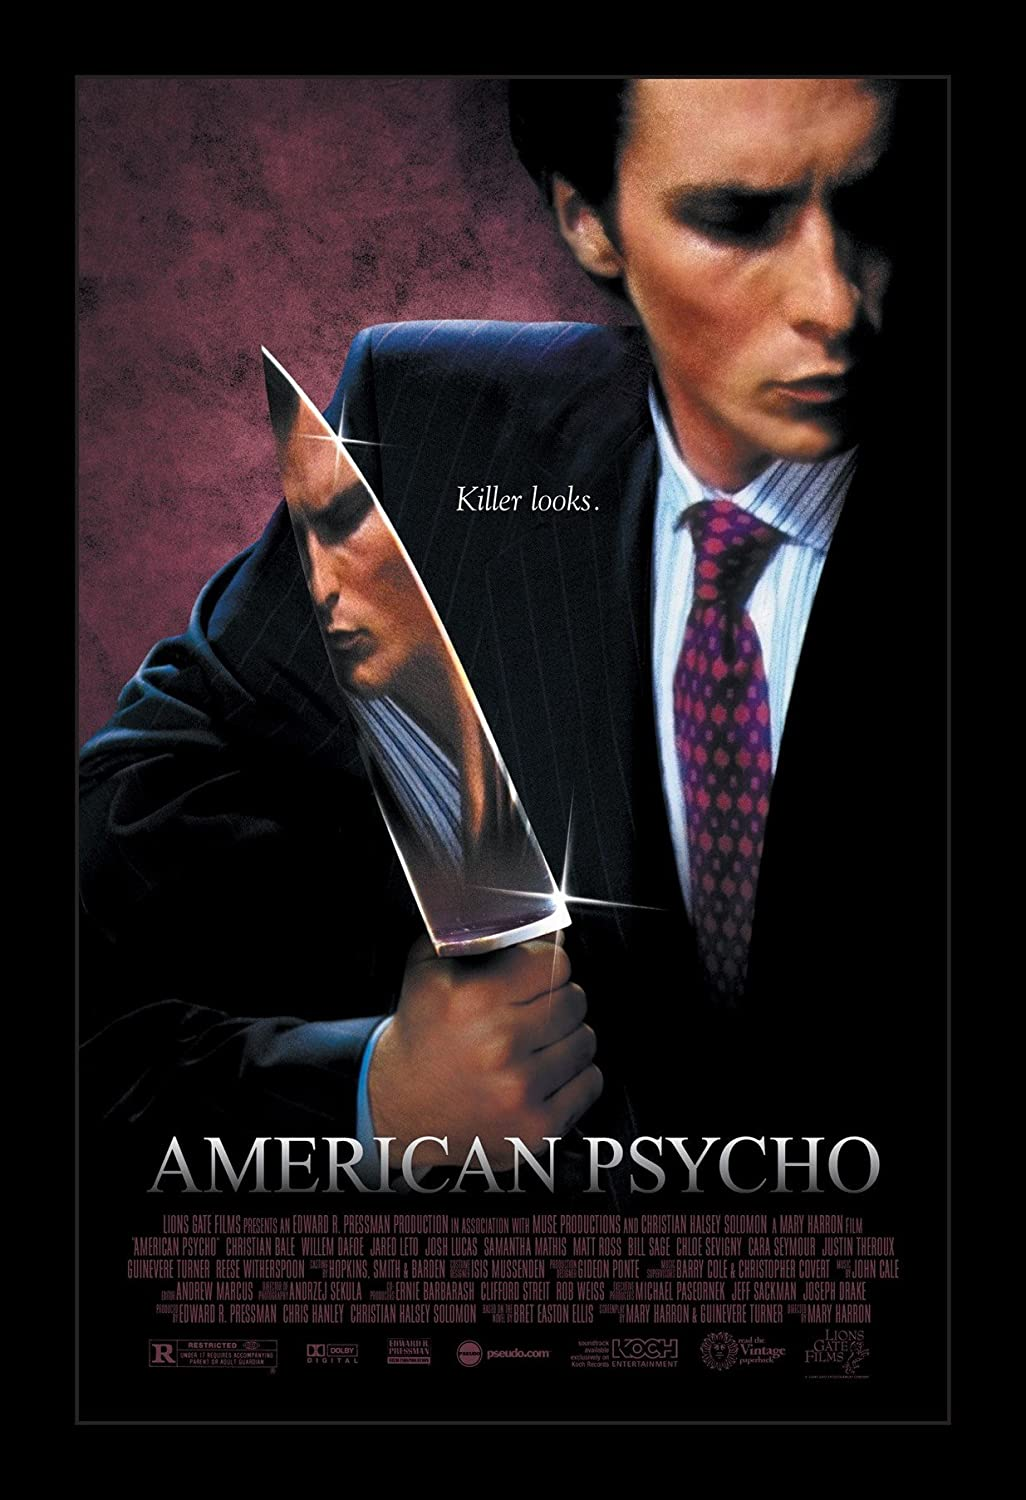 Amazon.com: Wallspace American Psycho - 11x17 Framed Movie Poster: Posters  & Prints